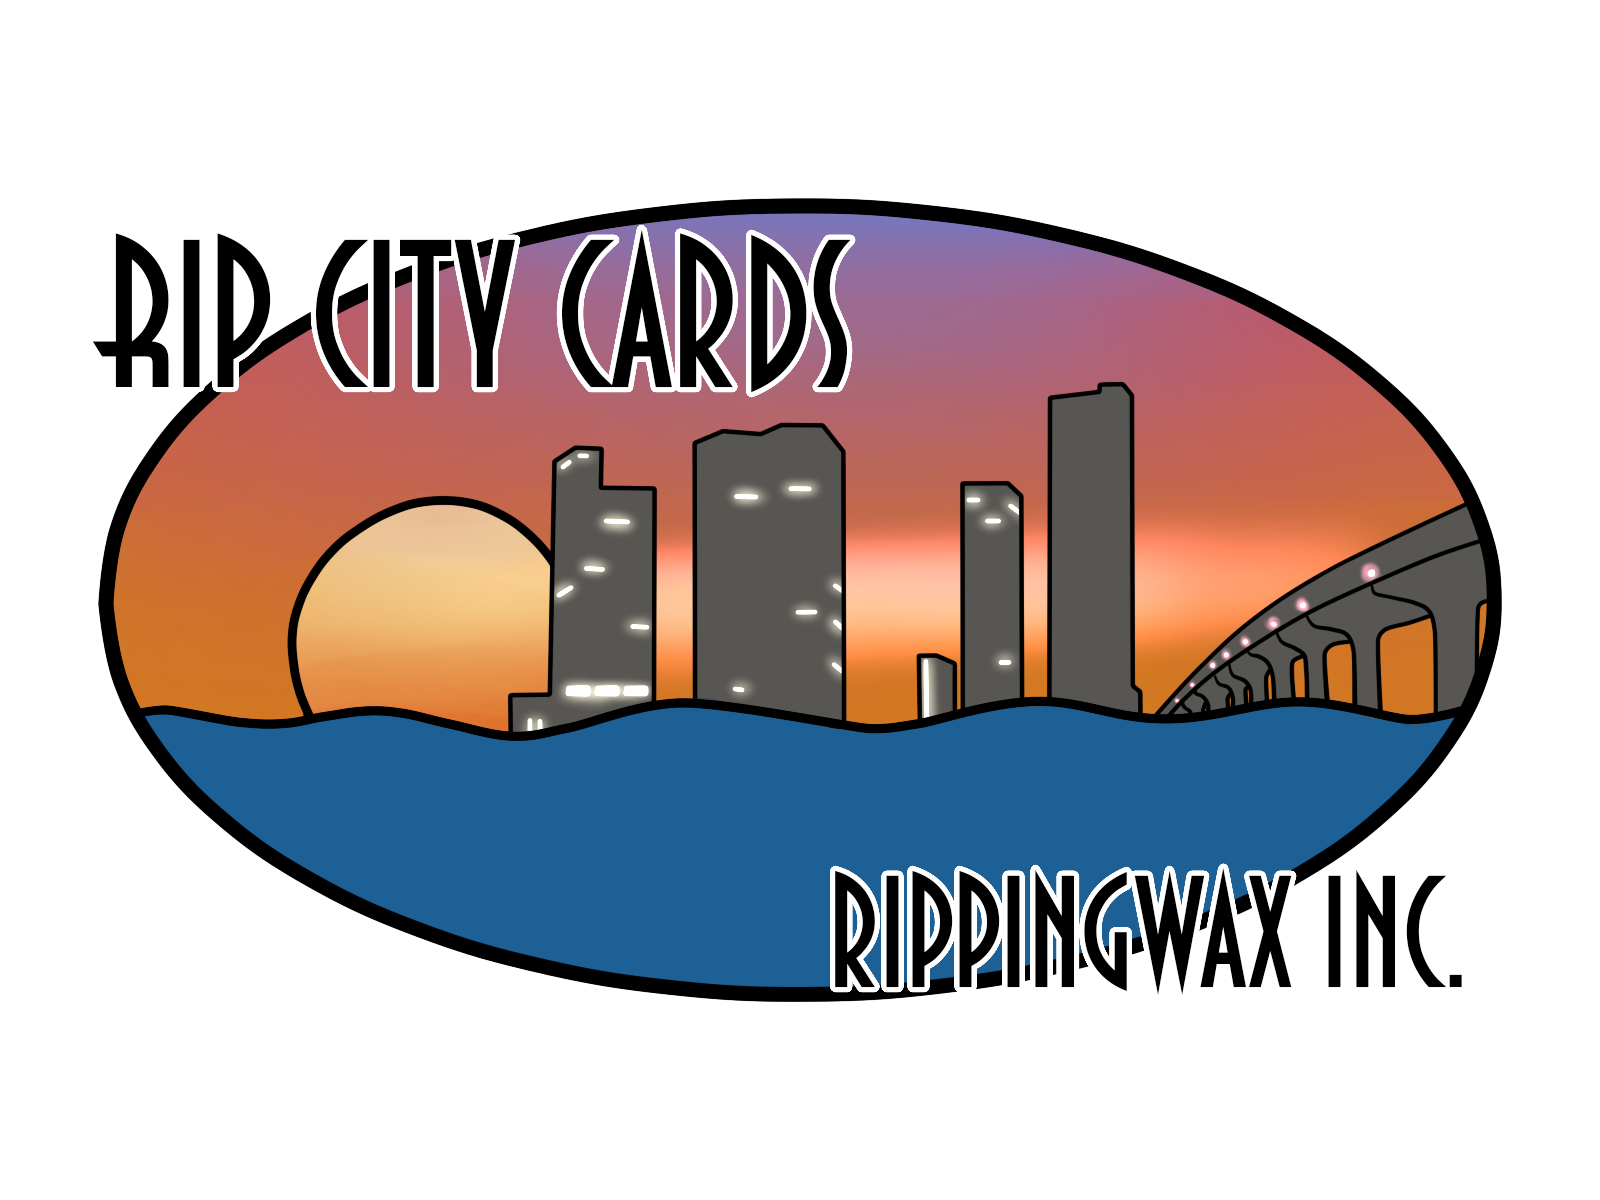 Ripping baseball clipart clipart freeuse library baseball products in RipCityCards Case Breaks | eBay Events clipart freeuse library